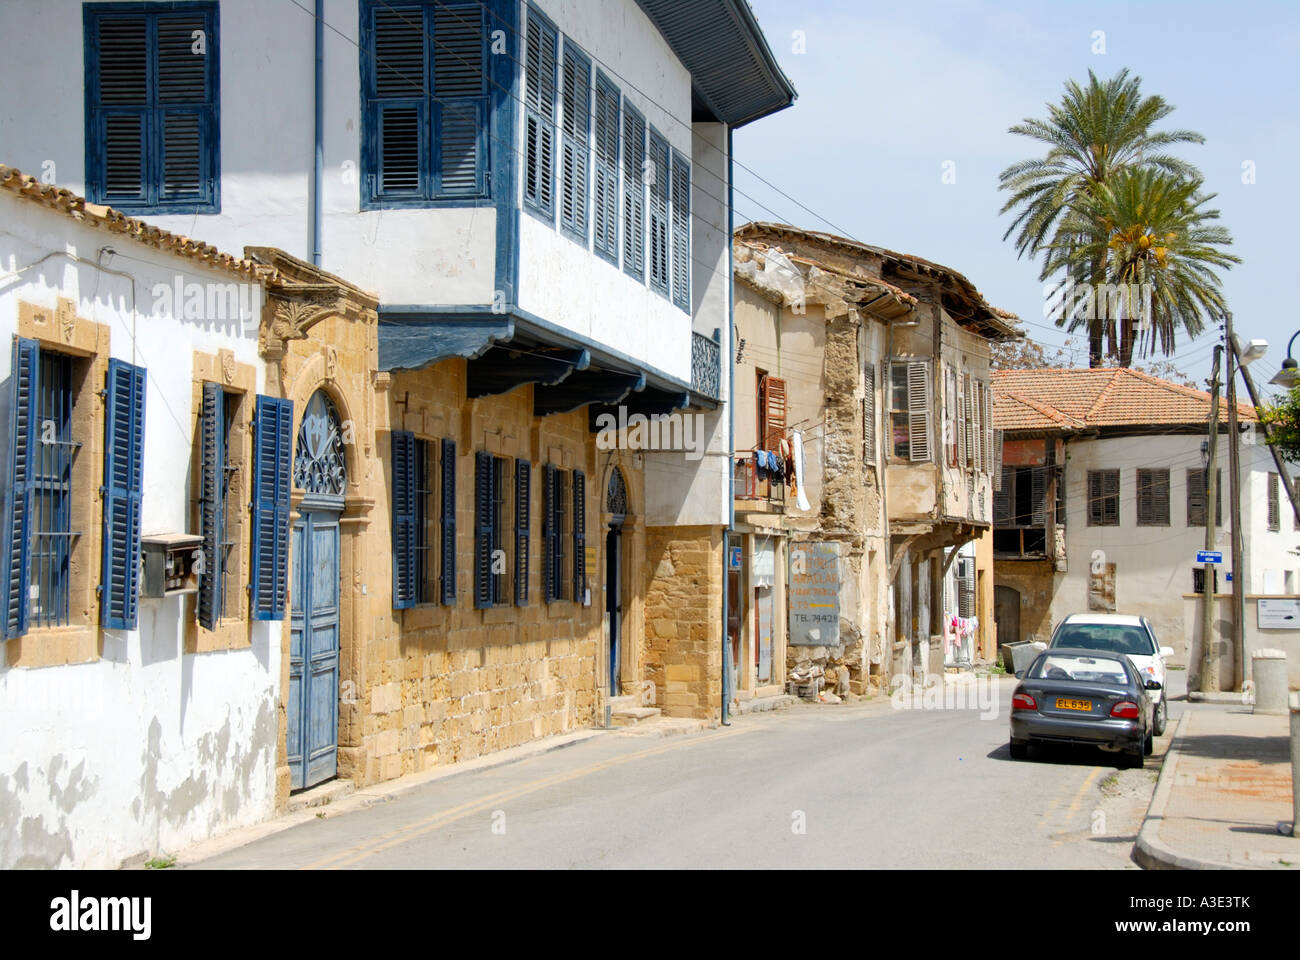 Old Turkish architecture with bays at the Dervish Pasha Houses in the streets of old town Lefkosa Nicosia North - Stock Image